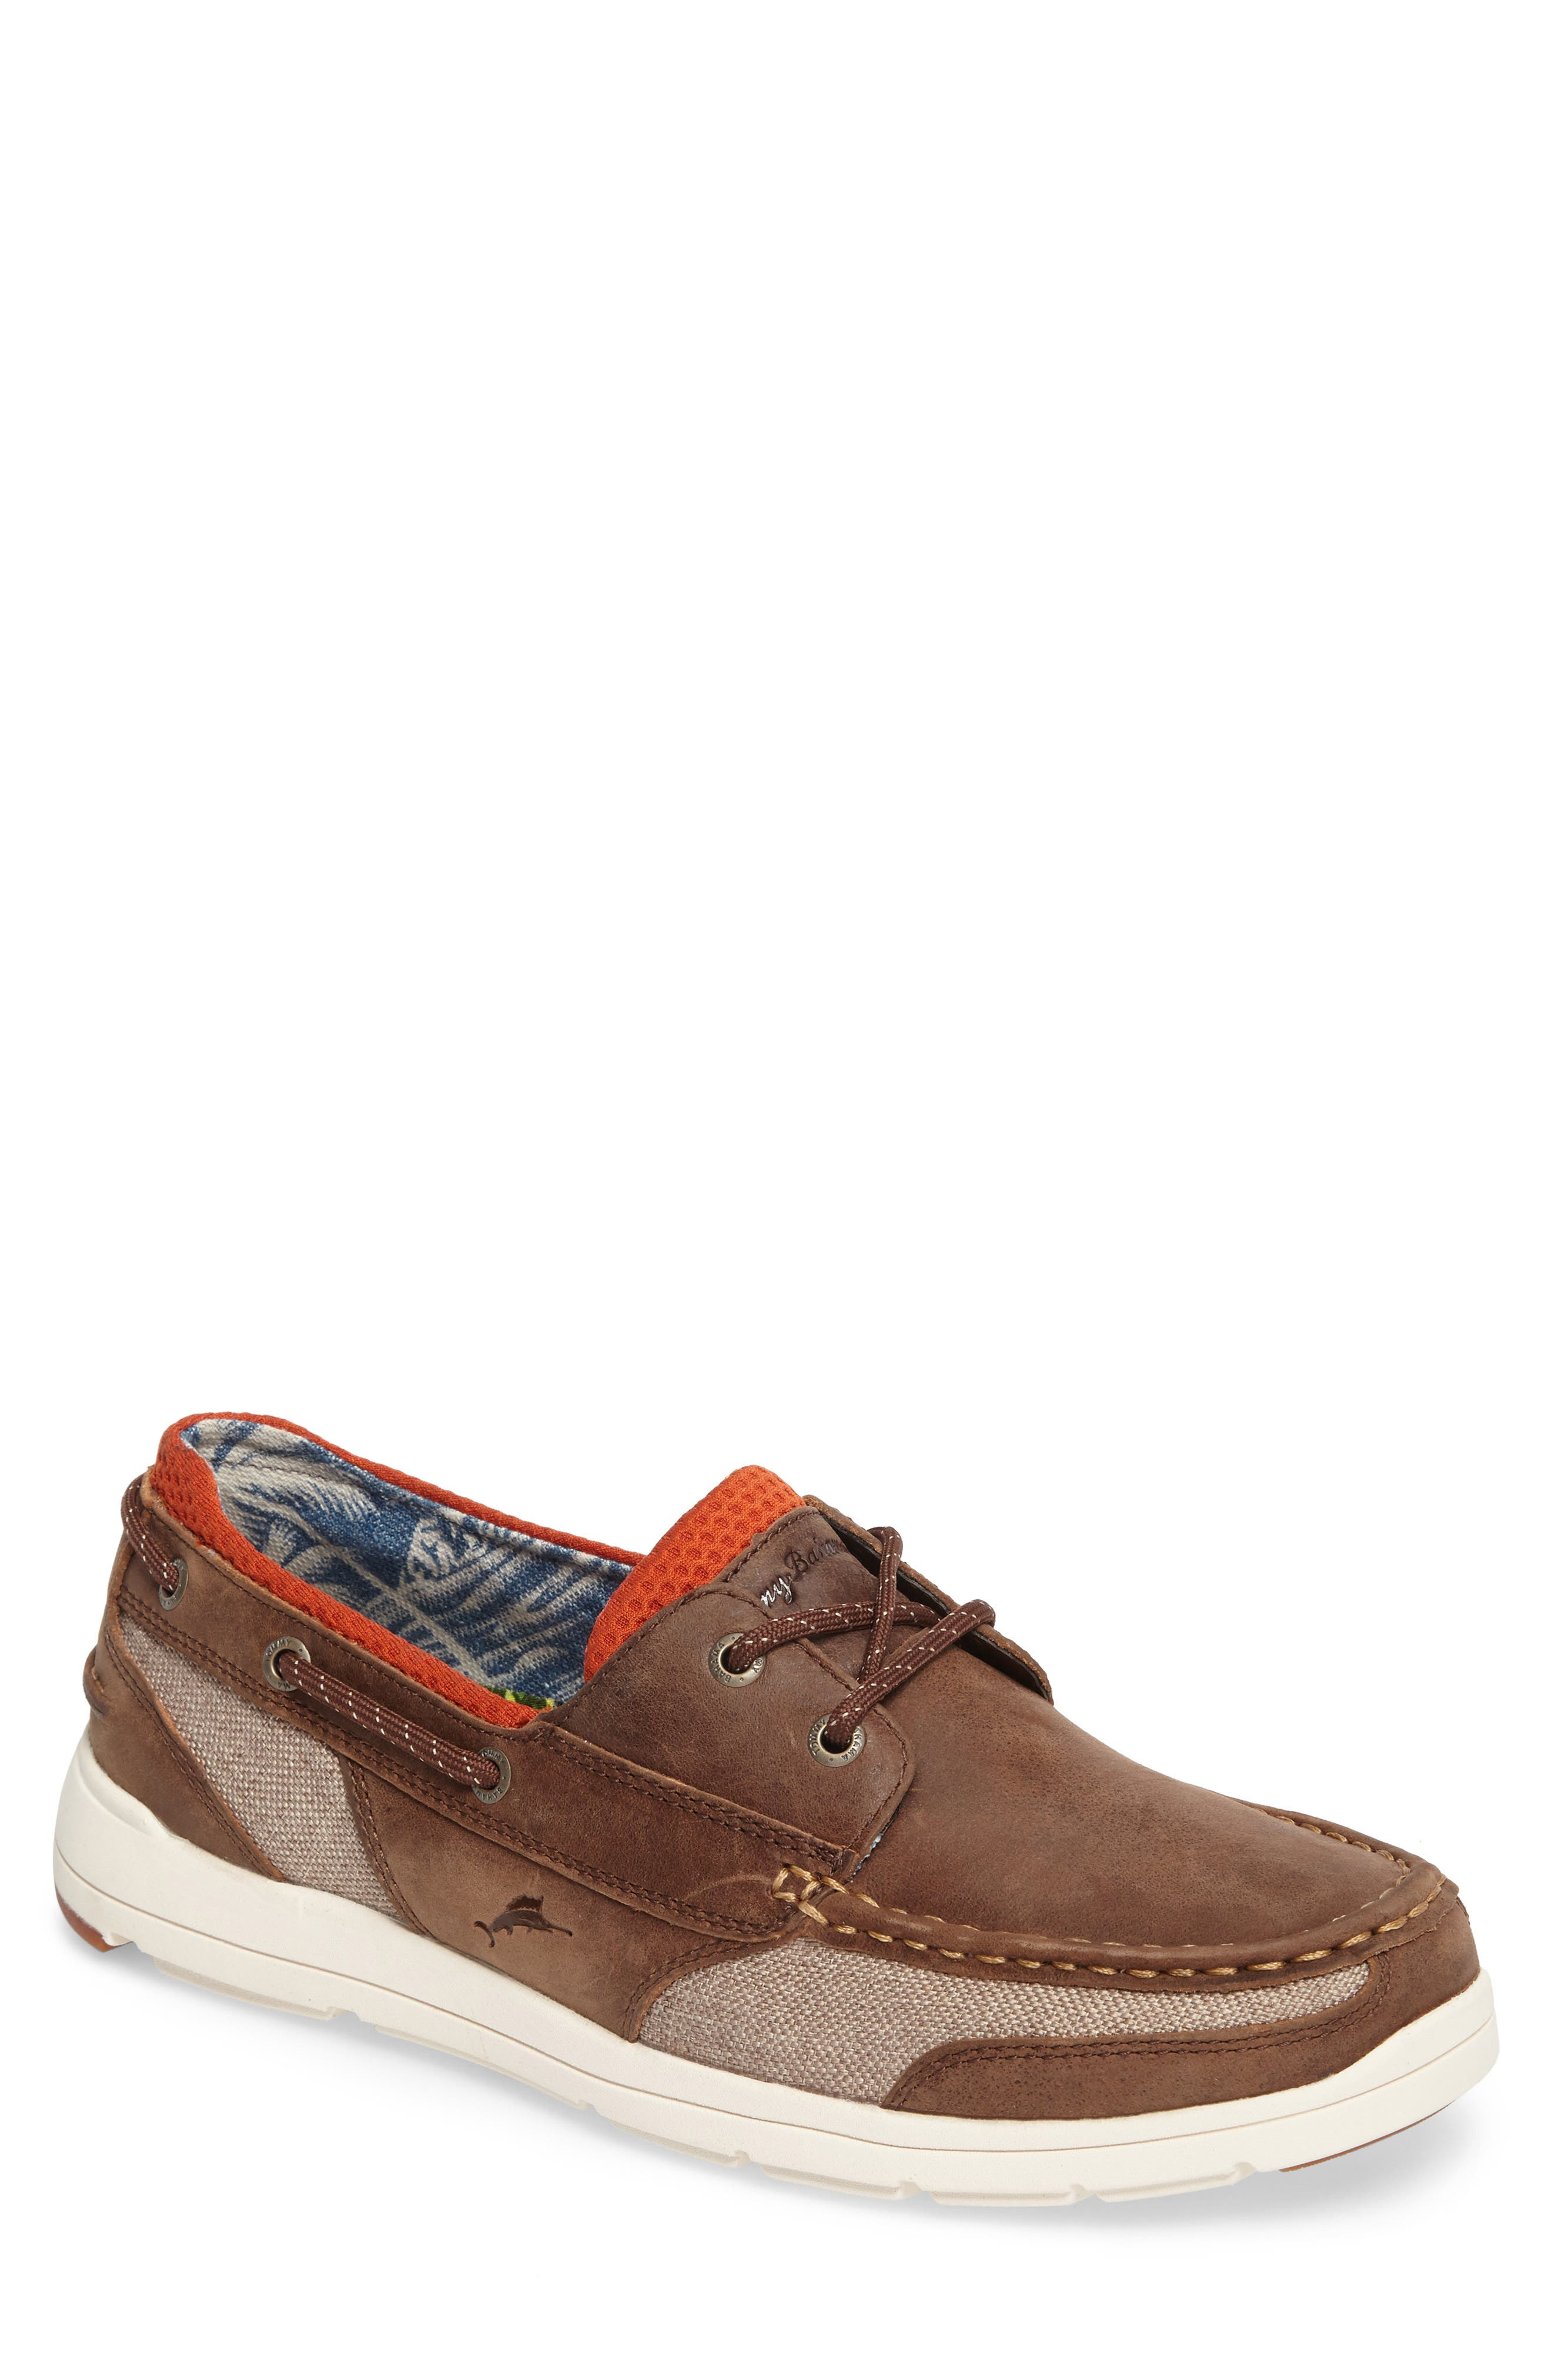 Spectator Boat Shoe,                         Main,                         color, Dark Brown Leather/ Mesh